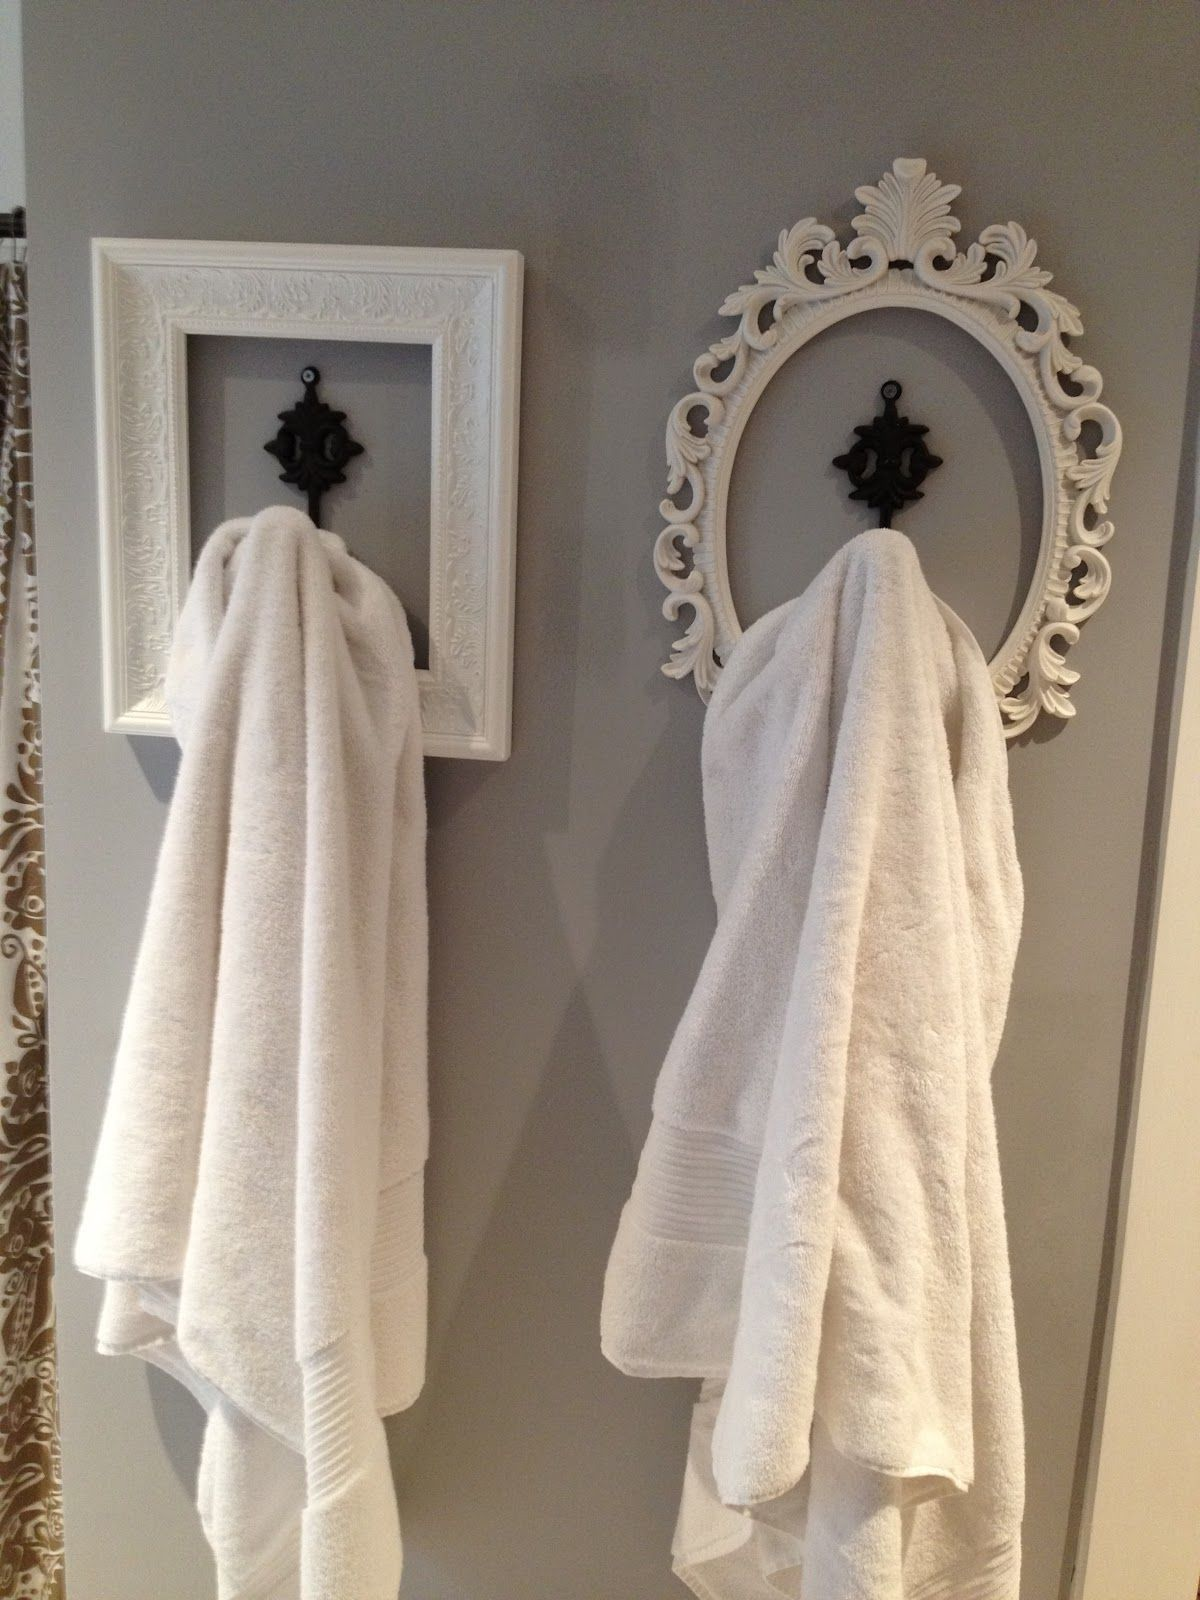 Kitchen towel hanging ideas - Kitchen Towel Hanging Ideas Hanging Towels Download